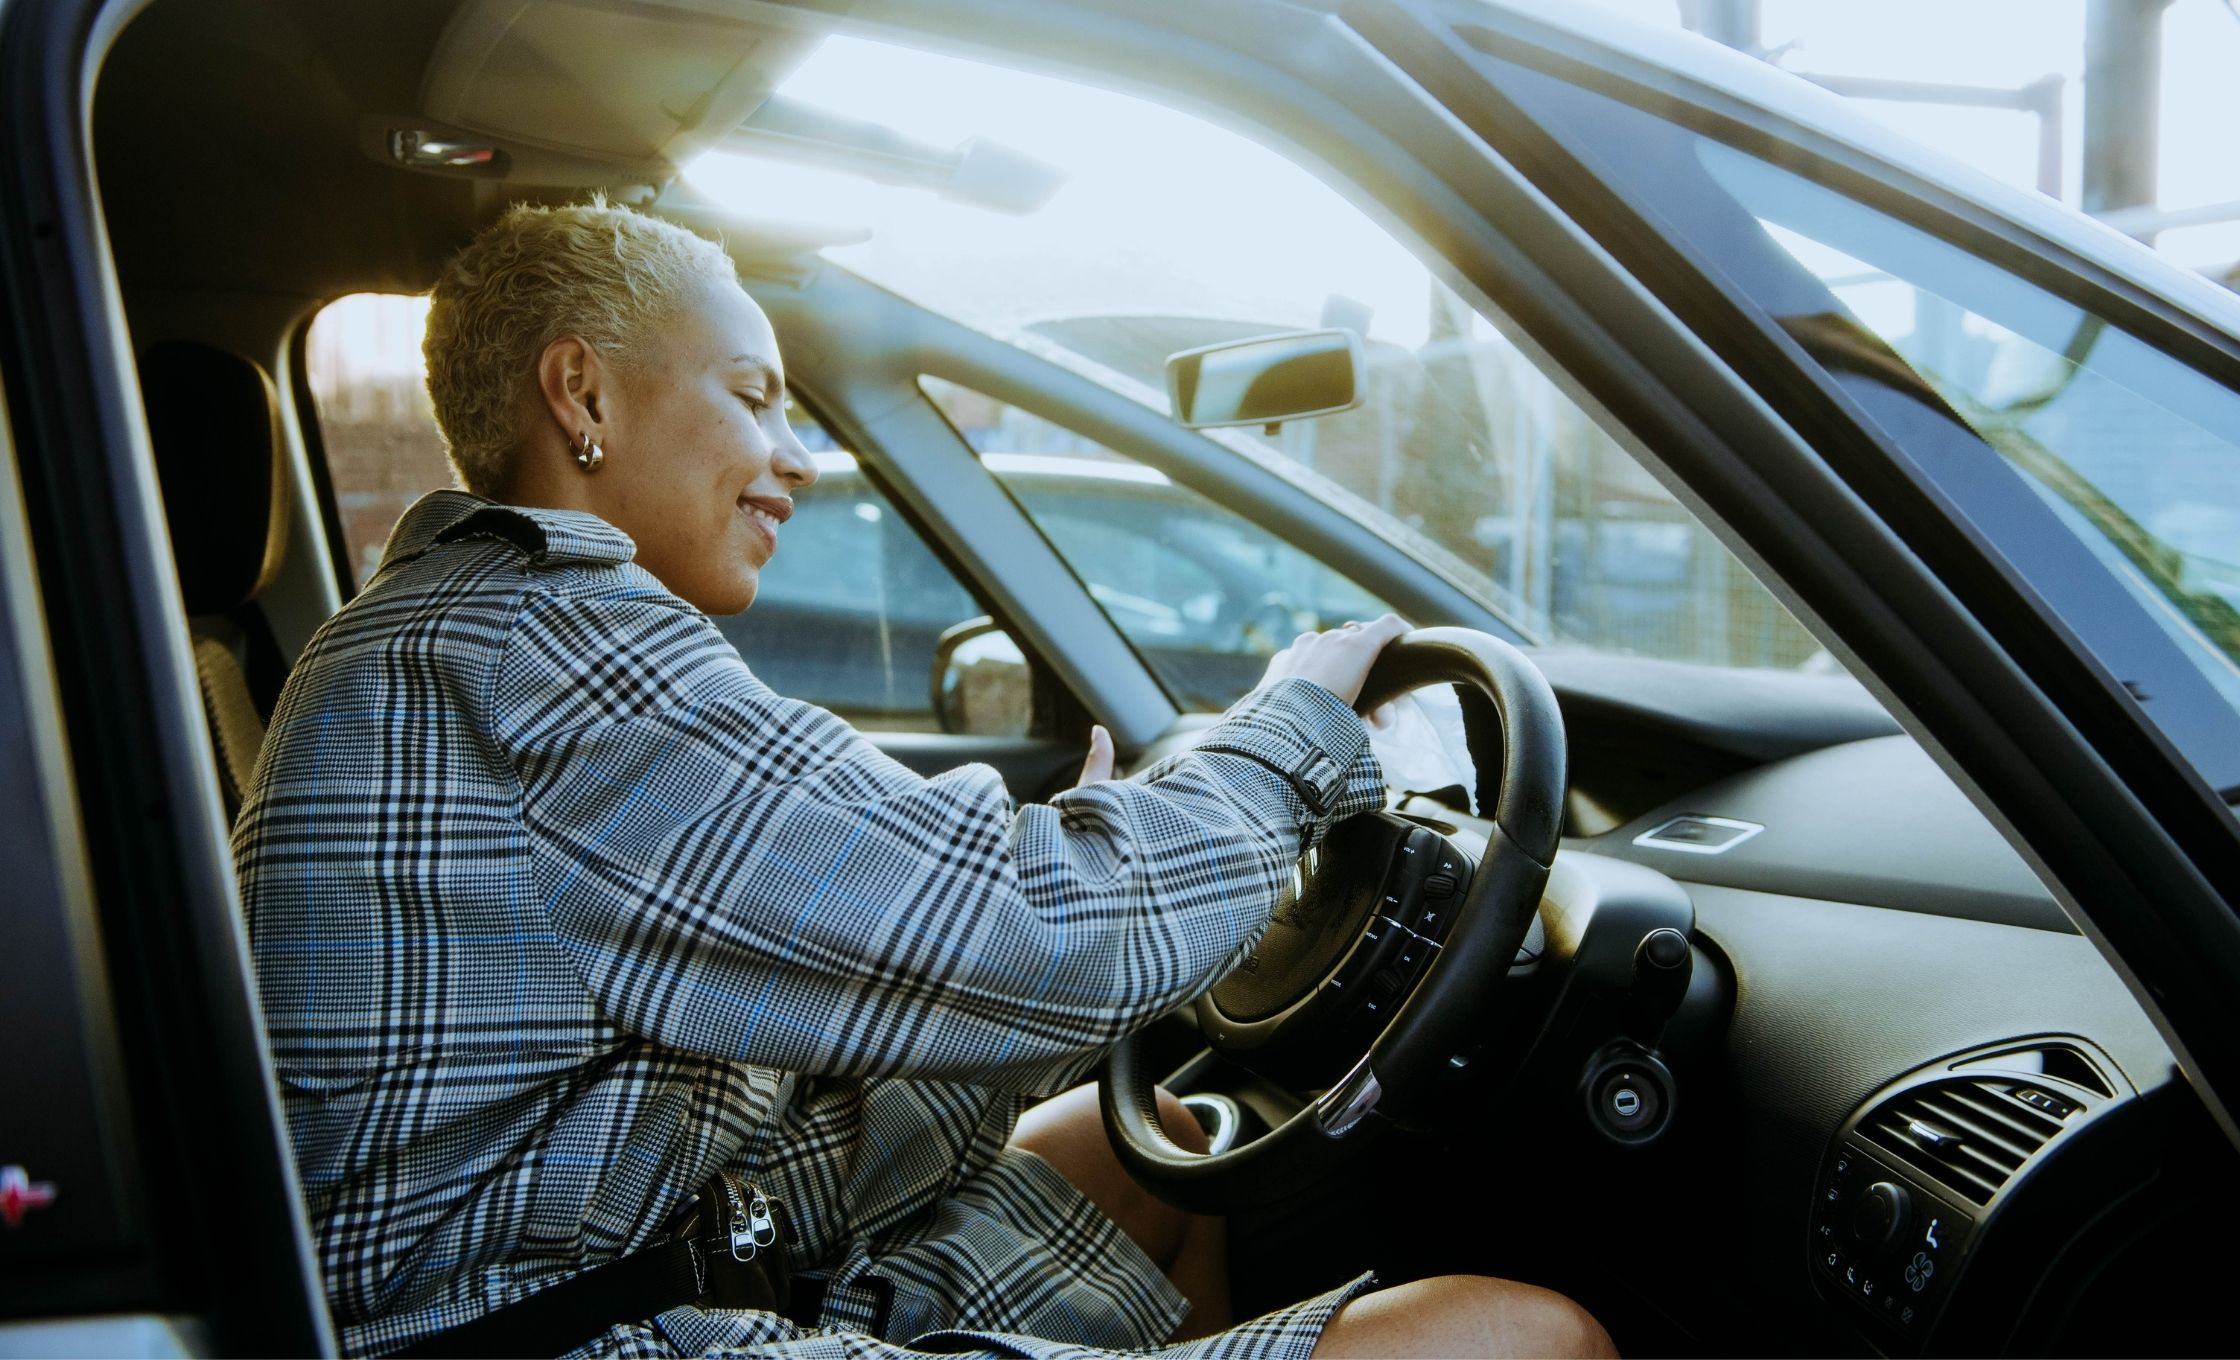 How much does it cost to rent a car?